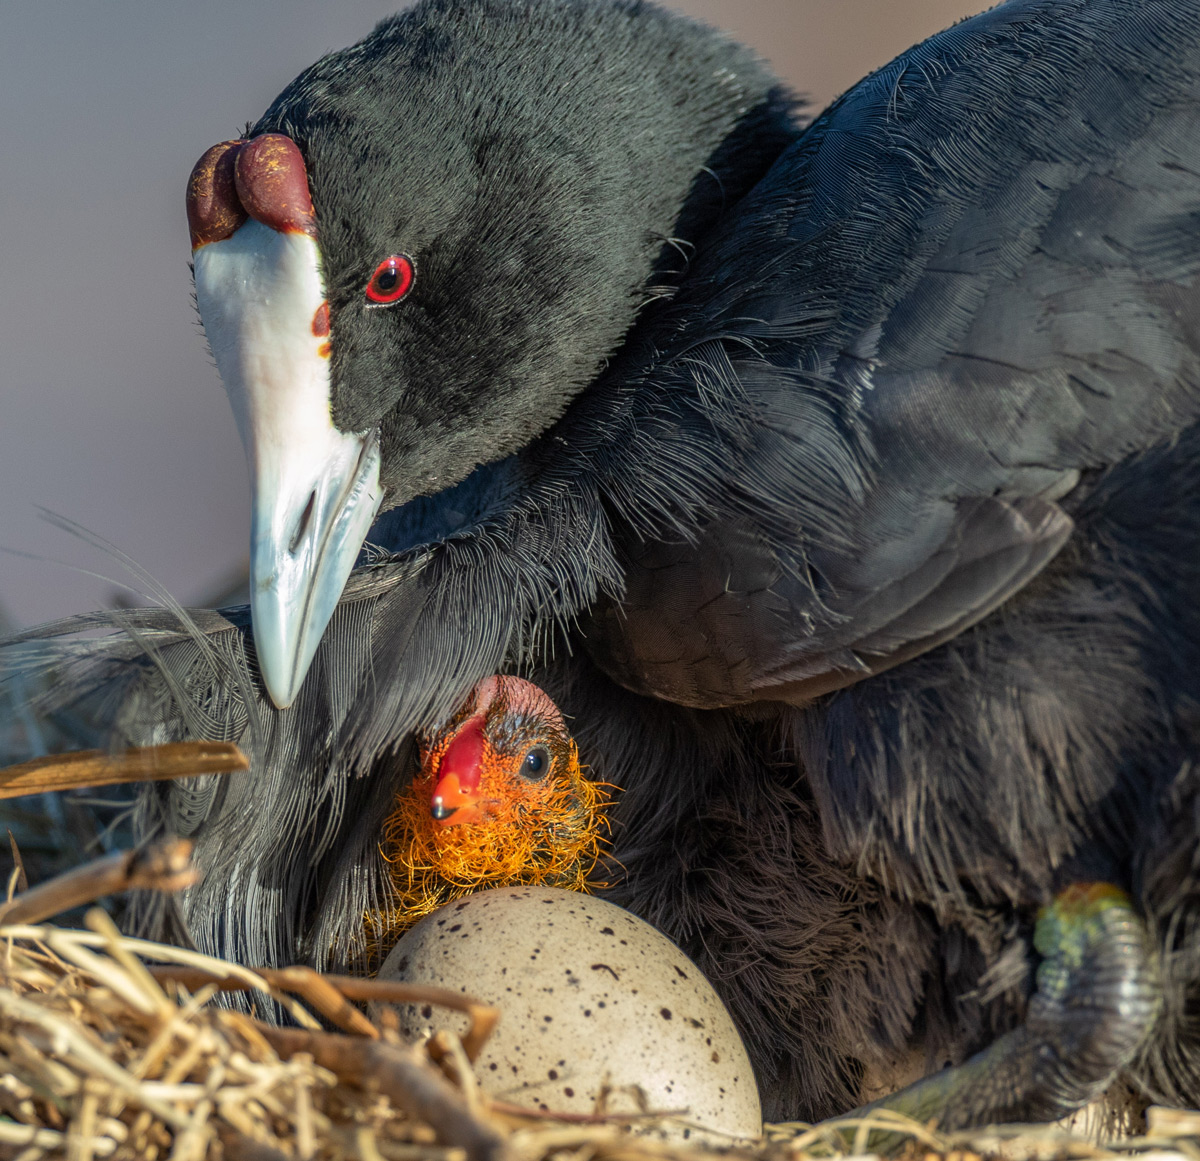 A female coot tends to her newly hatched chick, while watching over the sibling trying to break out of its shell at Zibulu Colliery Hides, South Africa © Karen Blackwood